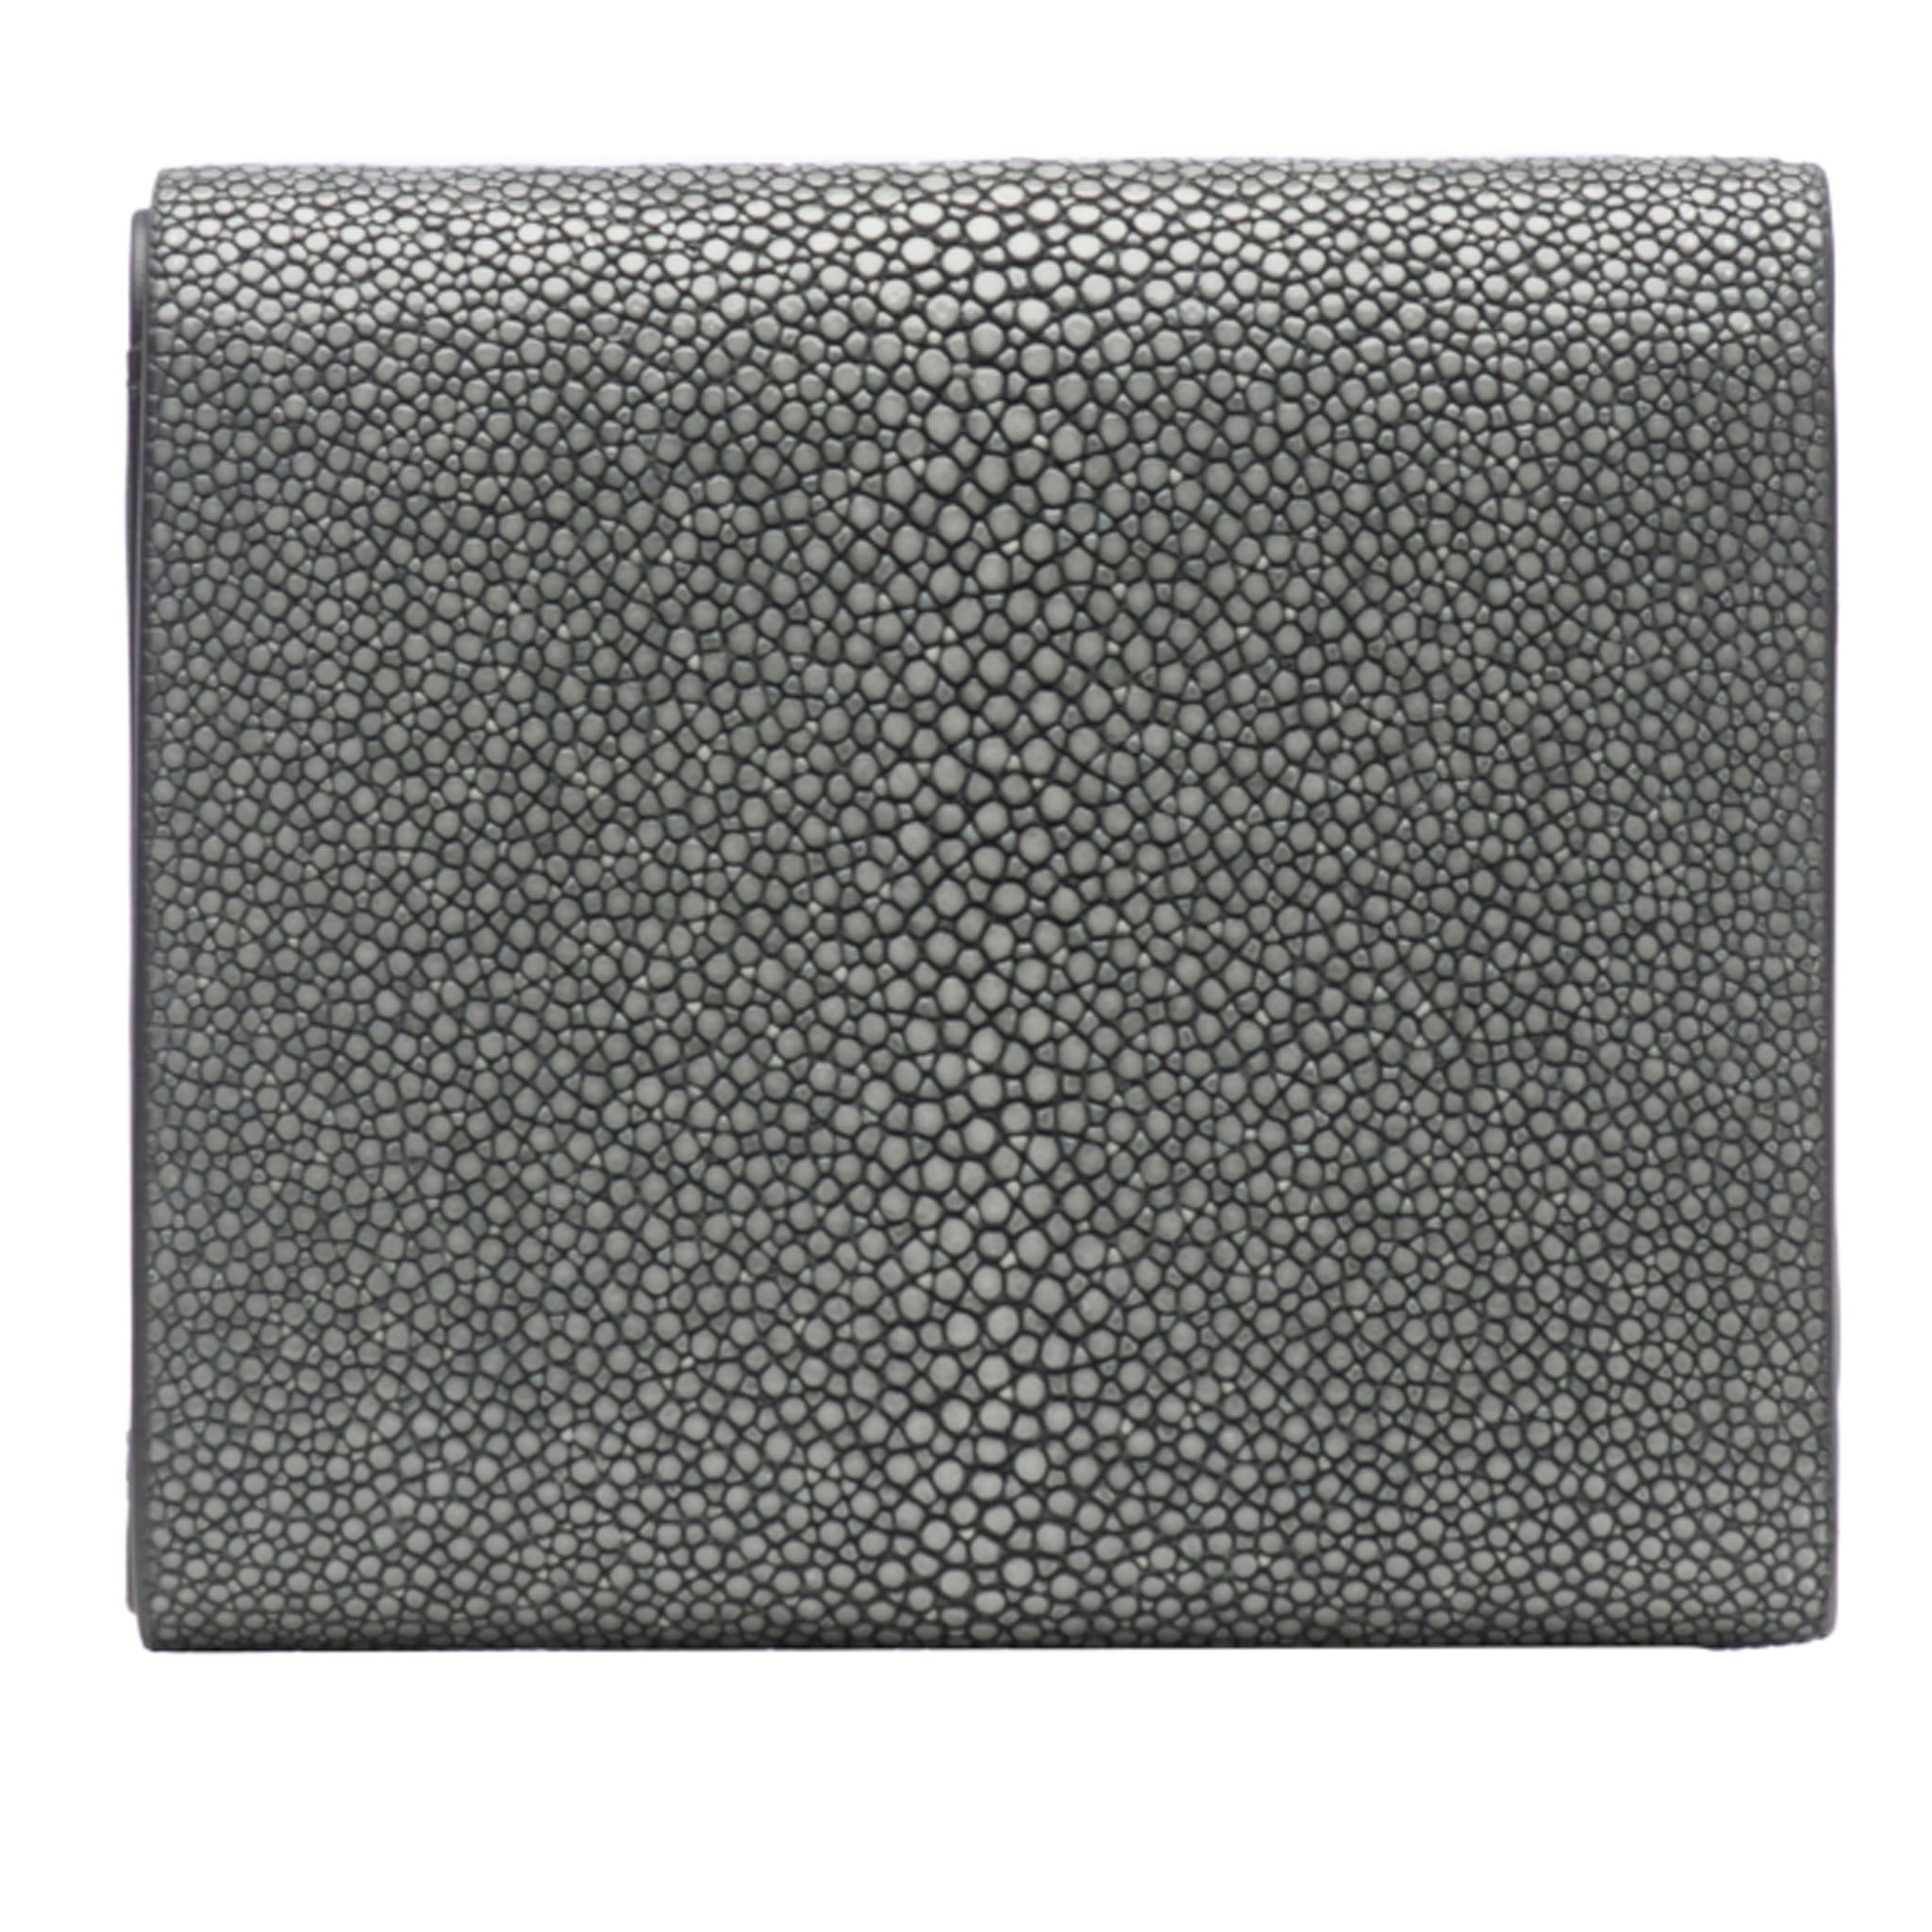 Gray Shagreen Tri-Fold Wallet Leather Interior Back View Evan - Vivo Studios